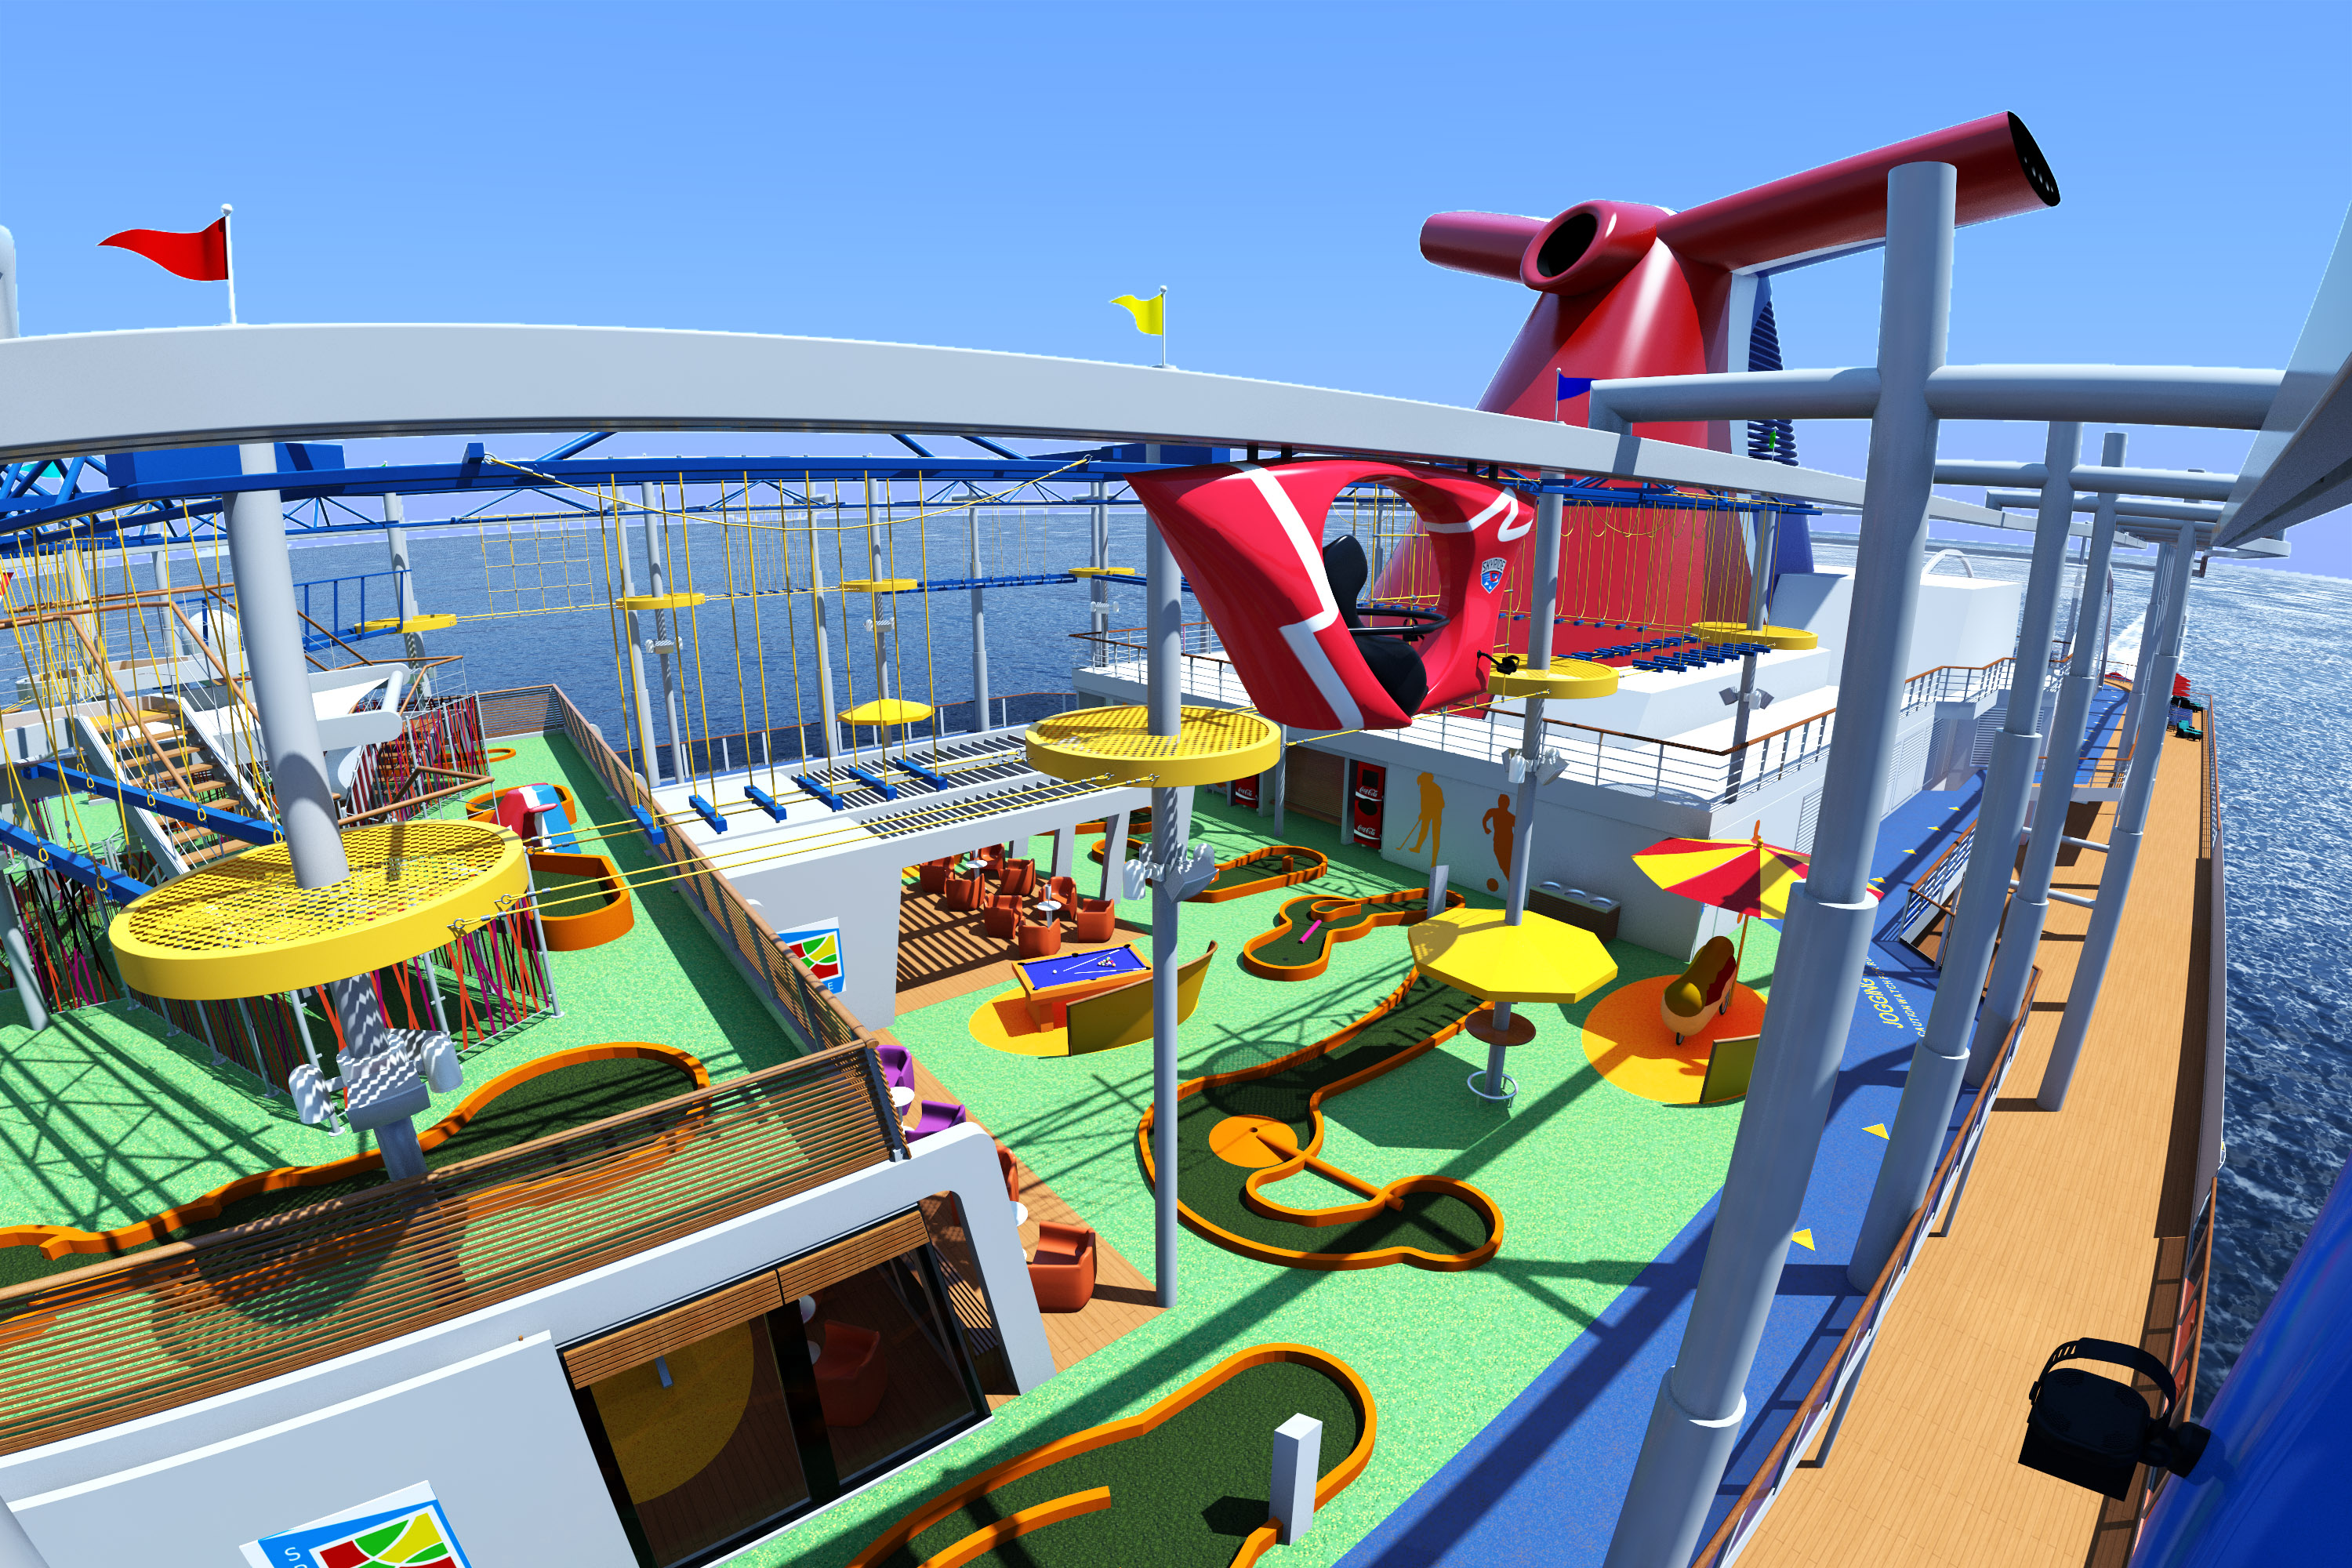 Coming In 2016: New Carnival Vista To Connect Guests To The Sea With Sweeping Ocean Views At Every Turn; Will Also Feature High-Altitude Sky Ride And World's First IMAX ® Theatre At Sea